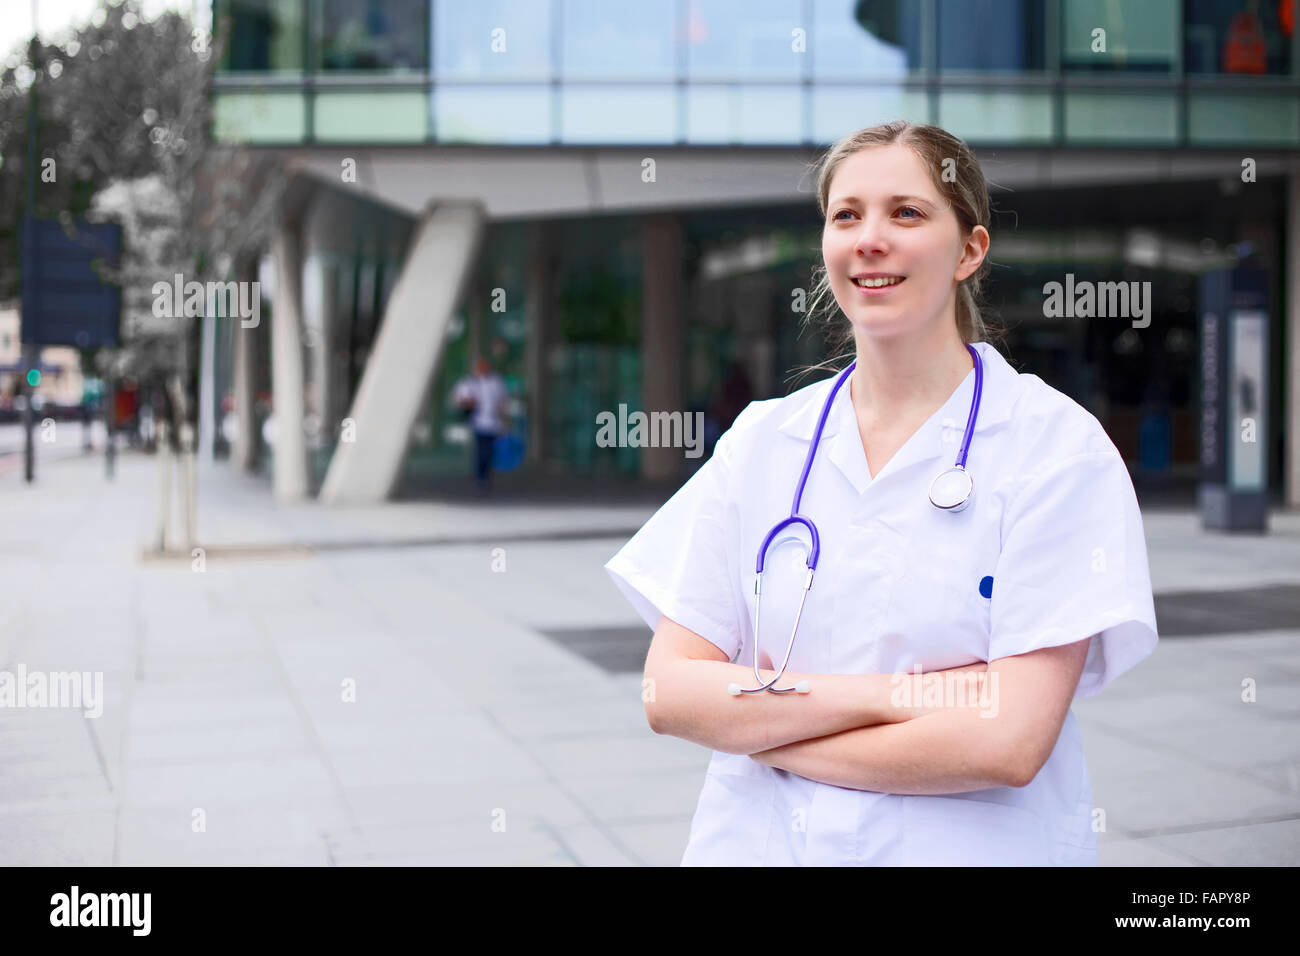 young doctor standing with her arms crossed - Stock Image